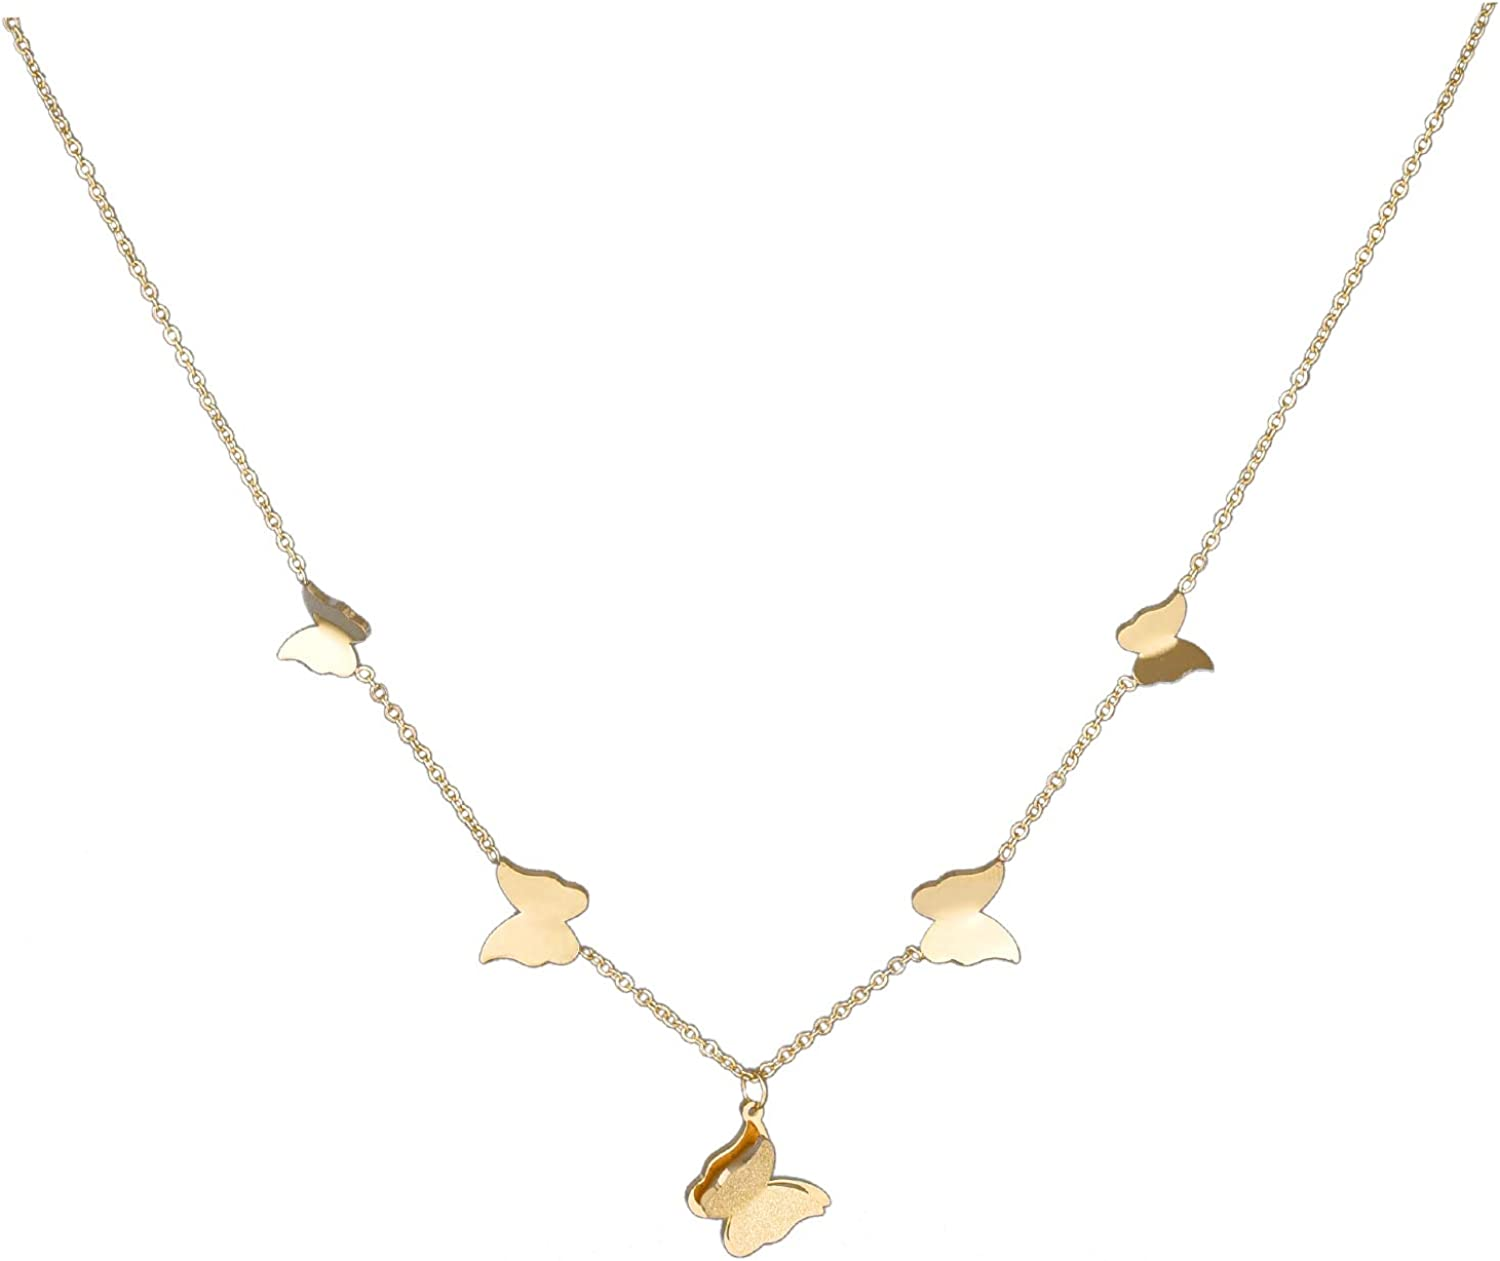 YUESUO 18K Gold Plated Butterfly Pendant Necklace for Women Girls Dainty Chain Handmade Jewelry 16